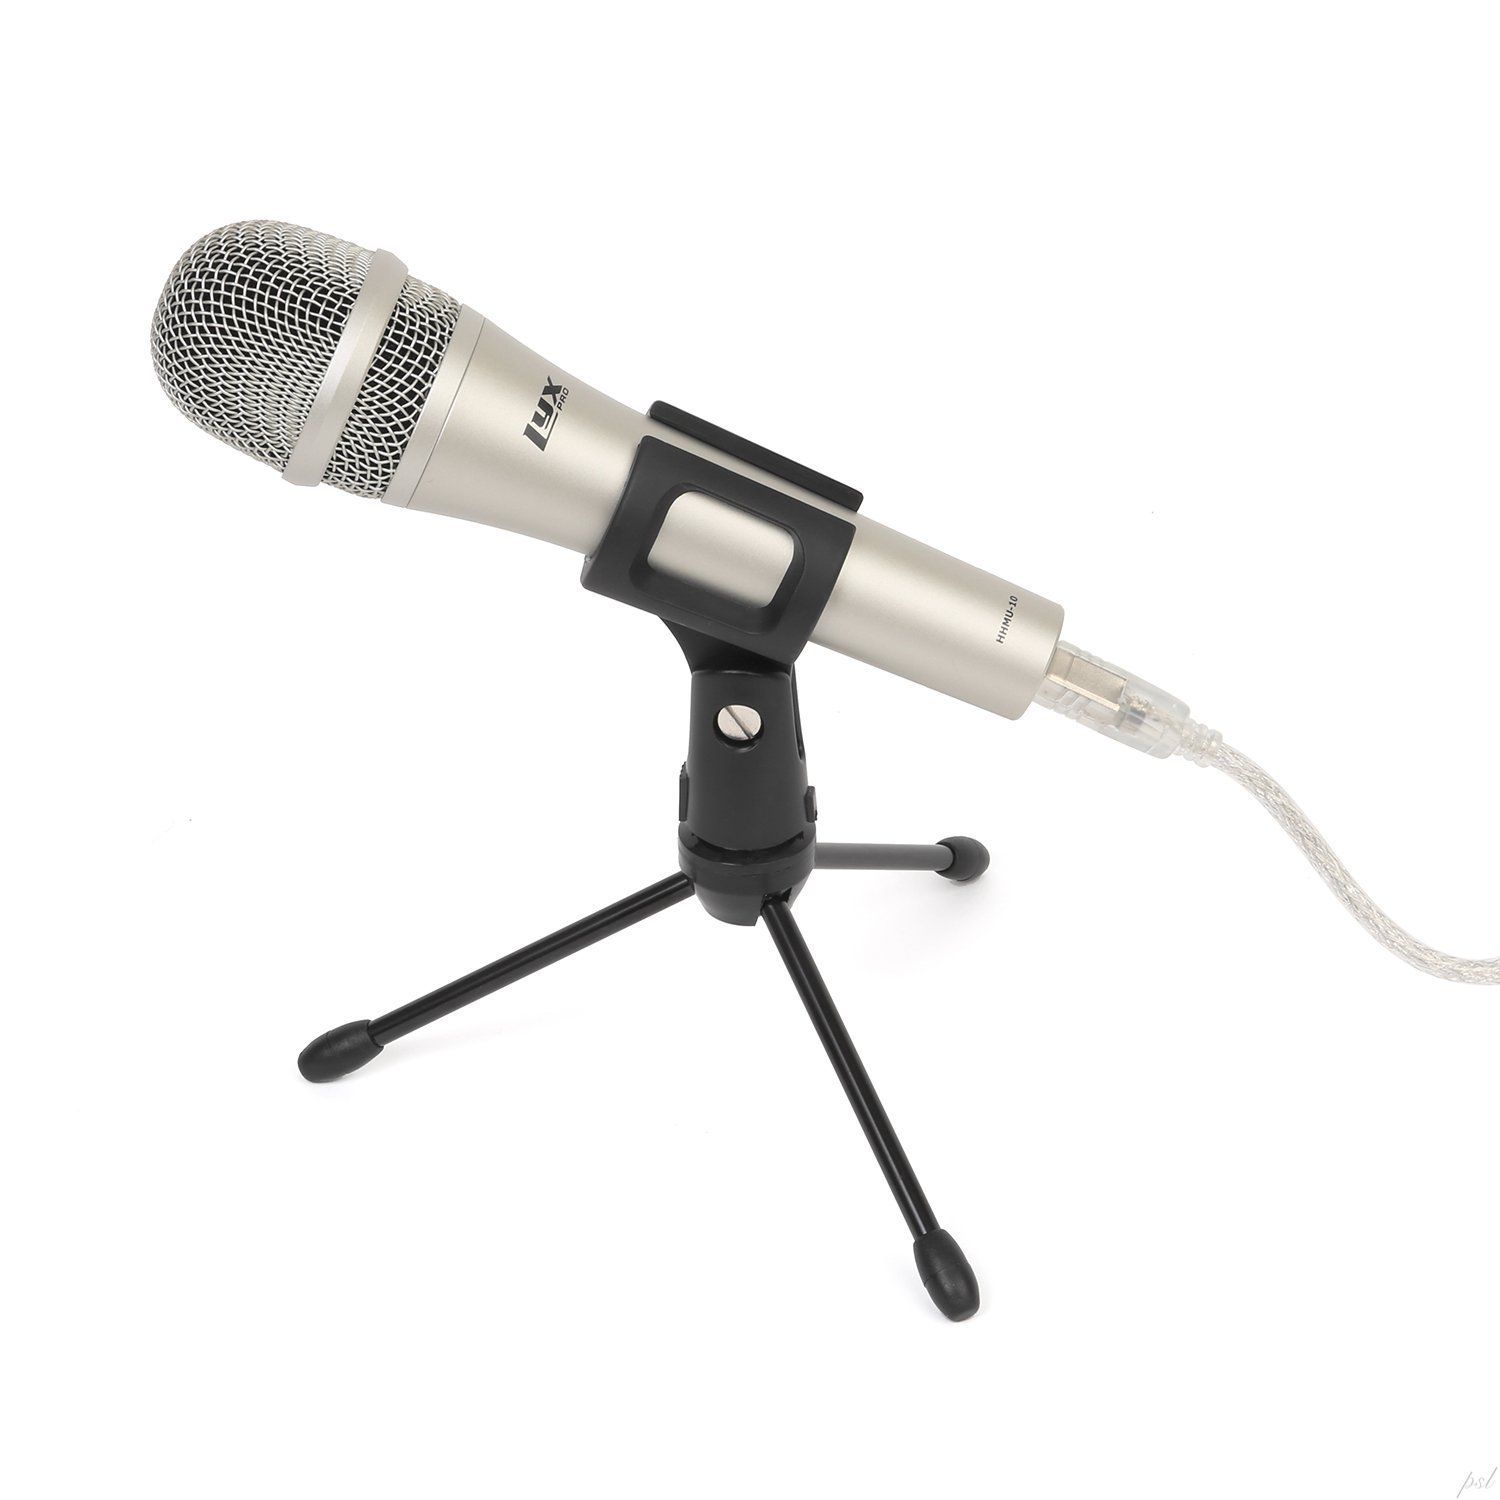 LyxPro HHMU-10 Cardioid Dynamic USB Microphone for Home Recording, Voice Over & Podcasting, Includes Desktop Tripod Stand & USB Cable by LyxPro